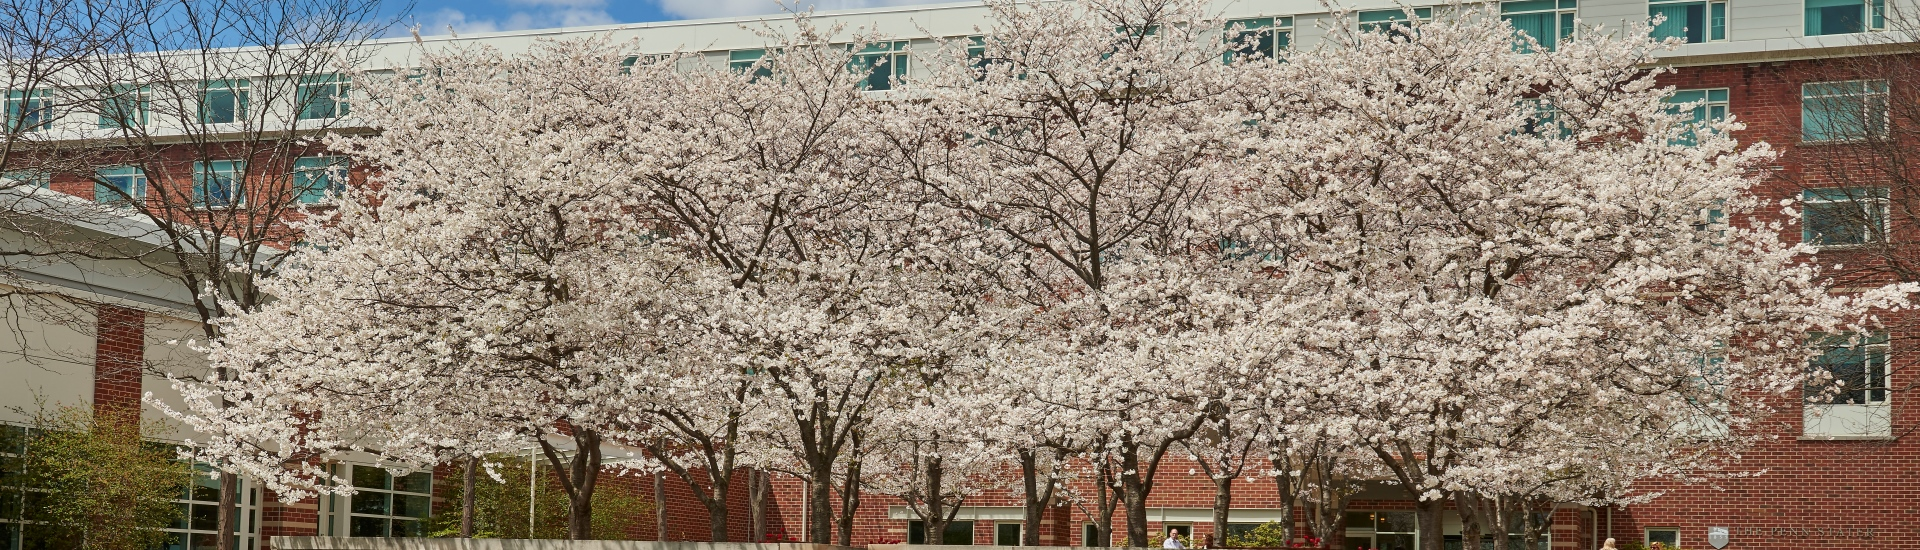 The Penn Stater Cherry Blossoms